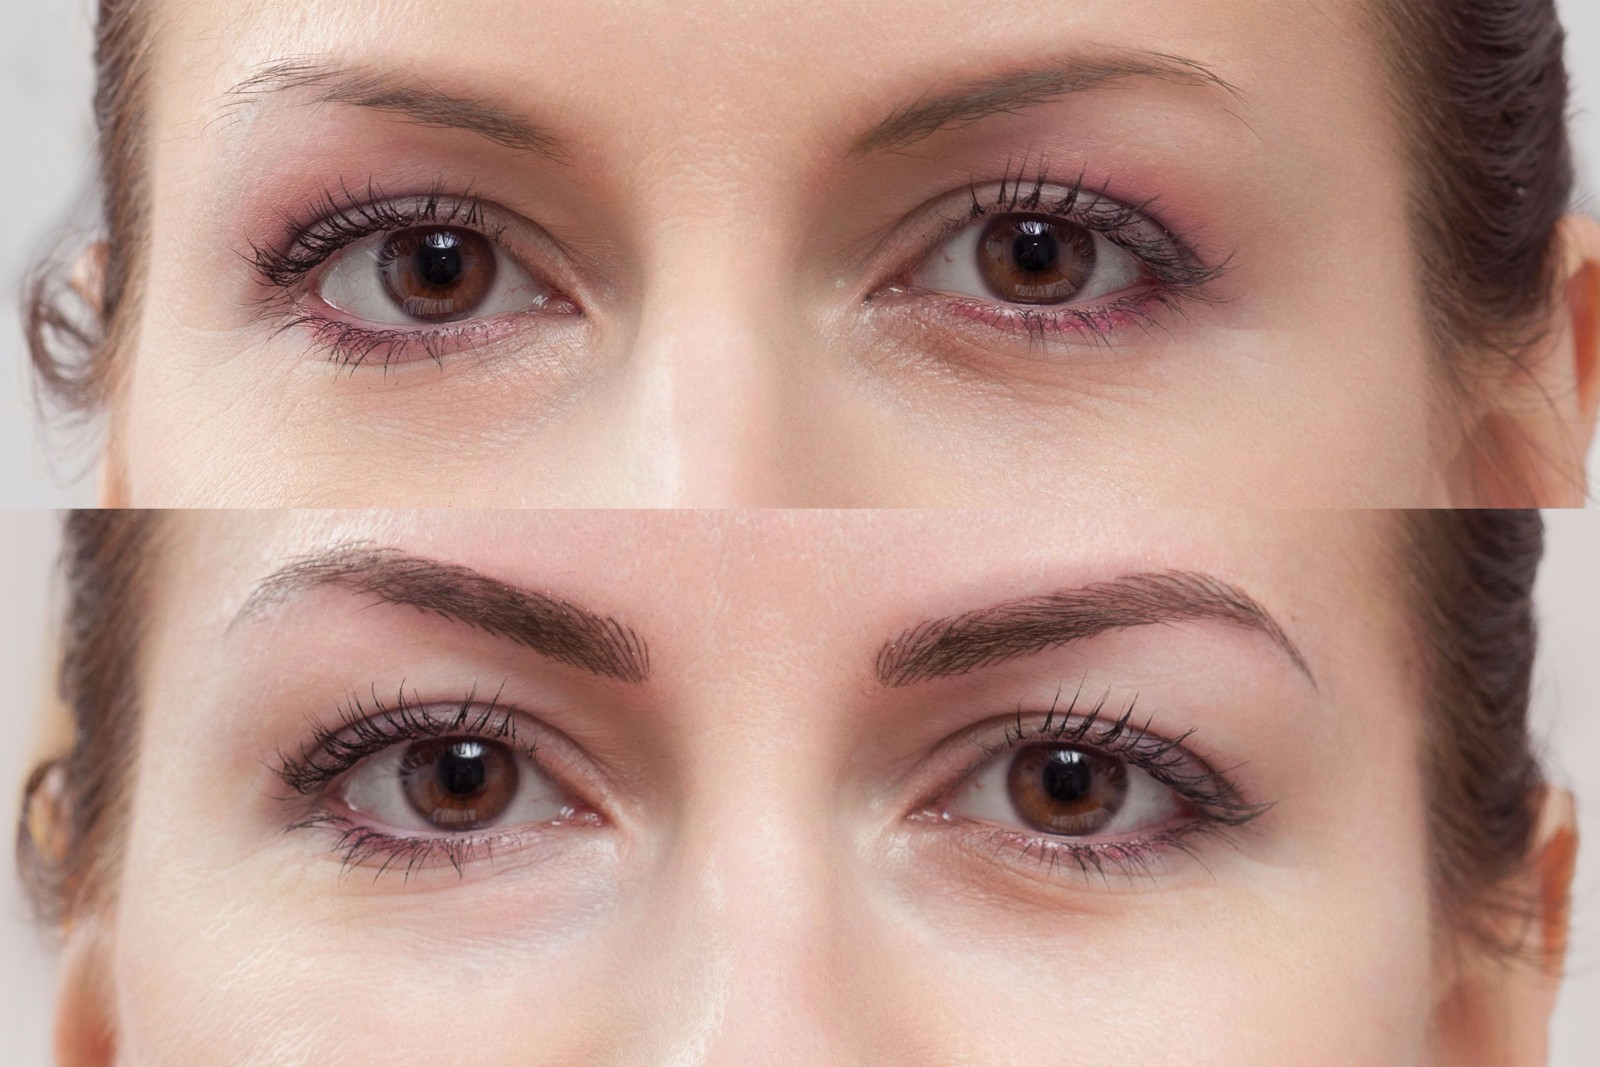 BoLin-The First Function Of The Permanent Makeup Tattoo - Eyebrow, Guangzhou